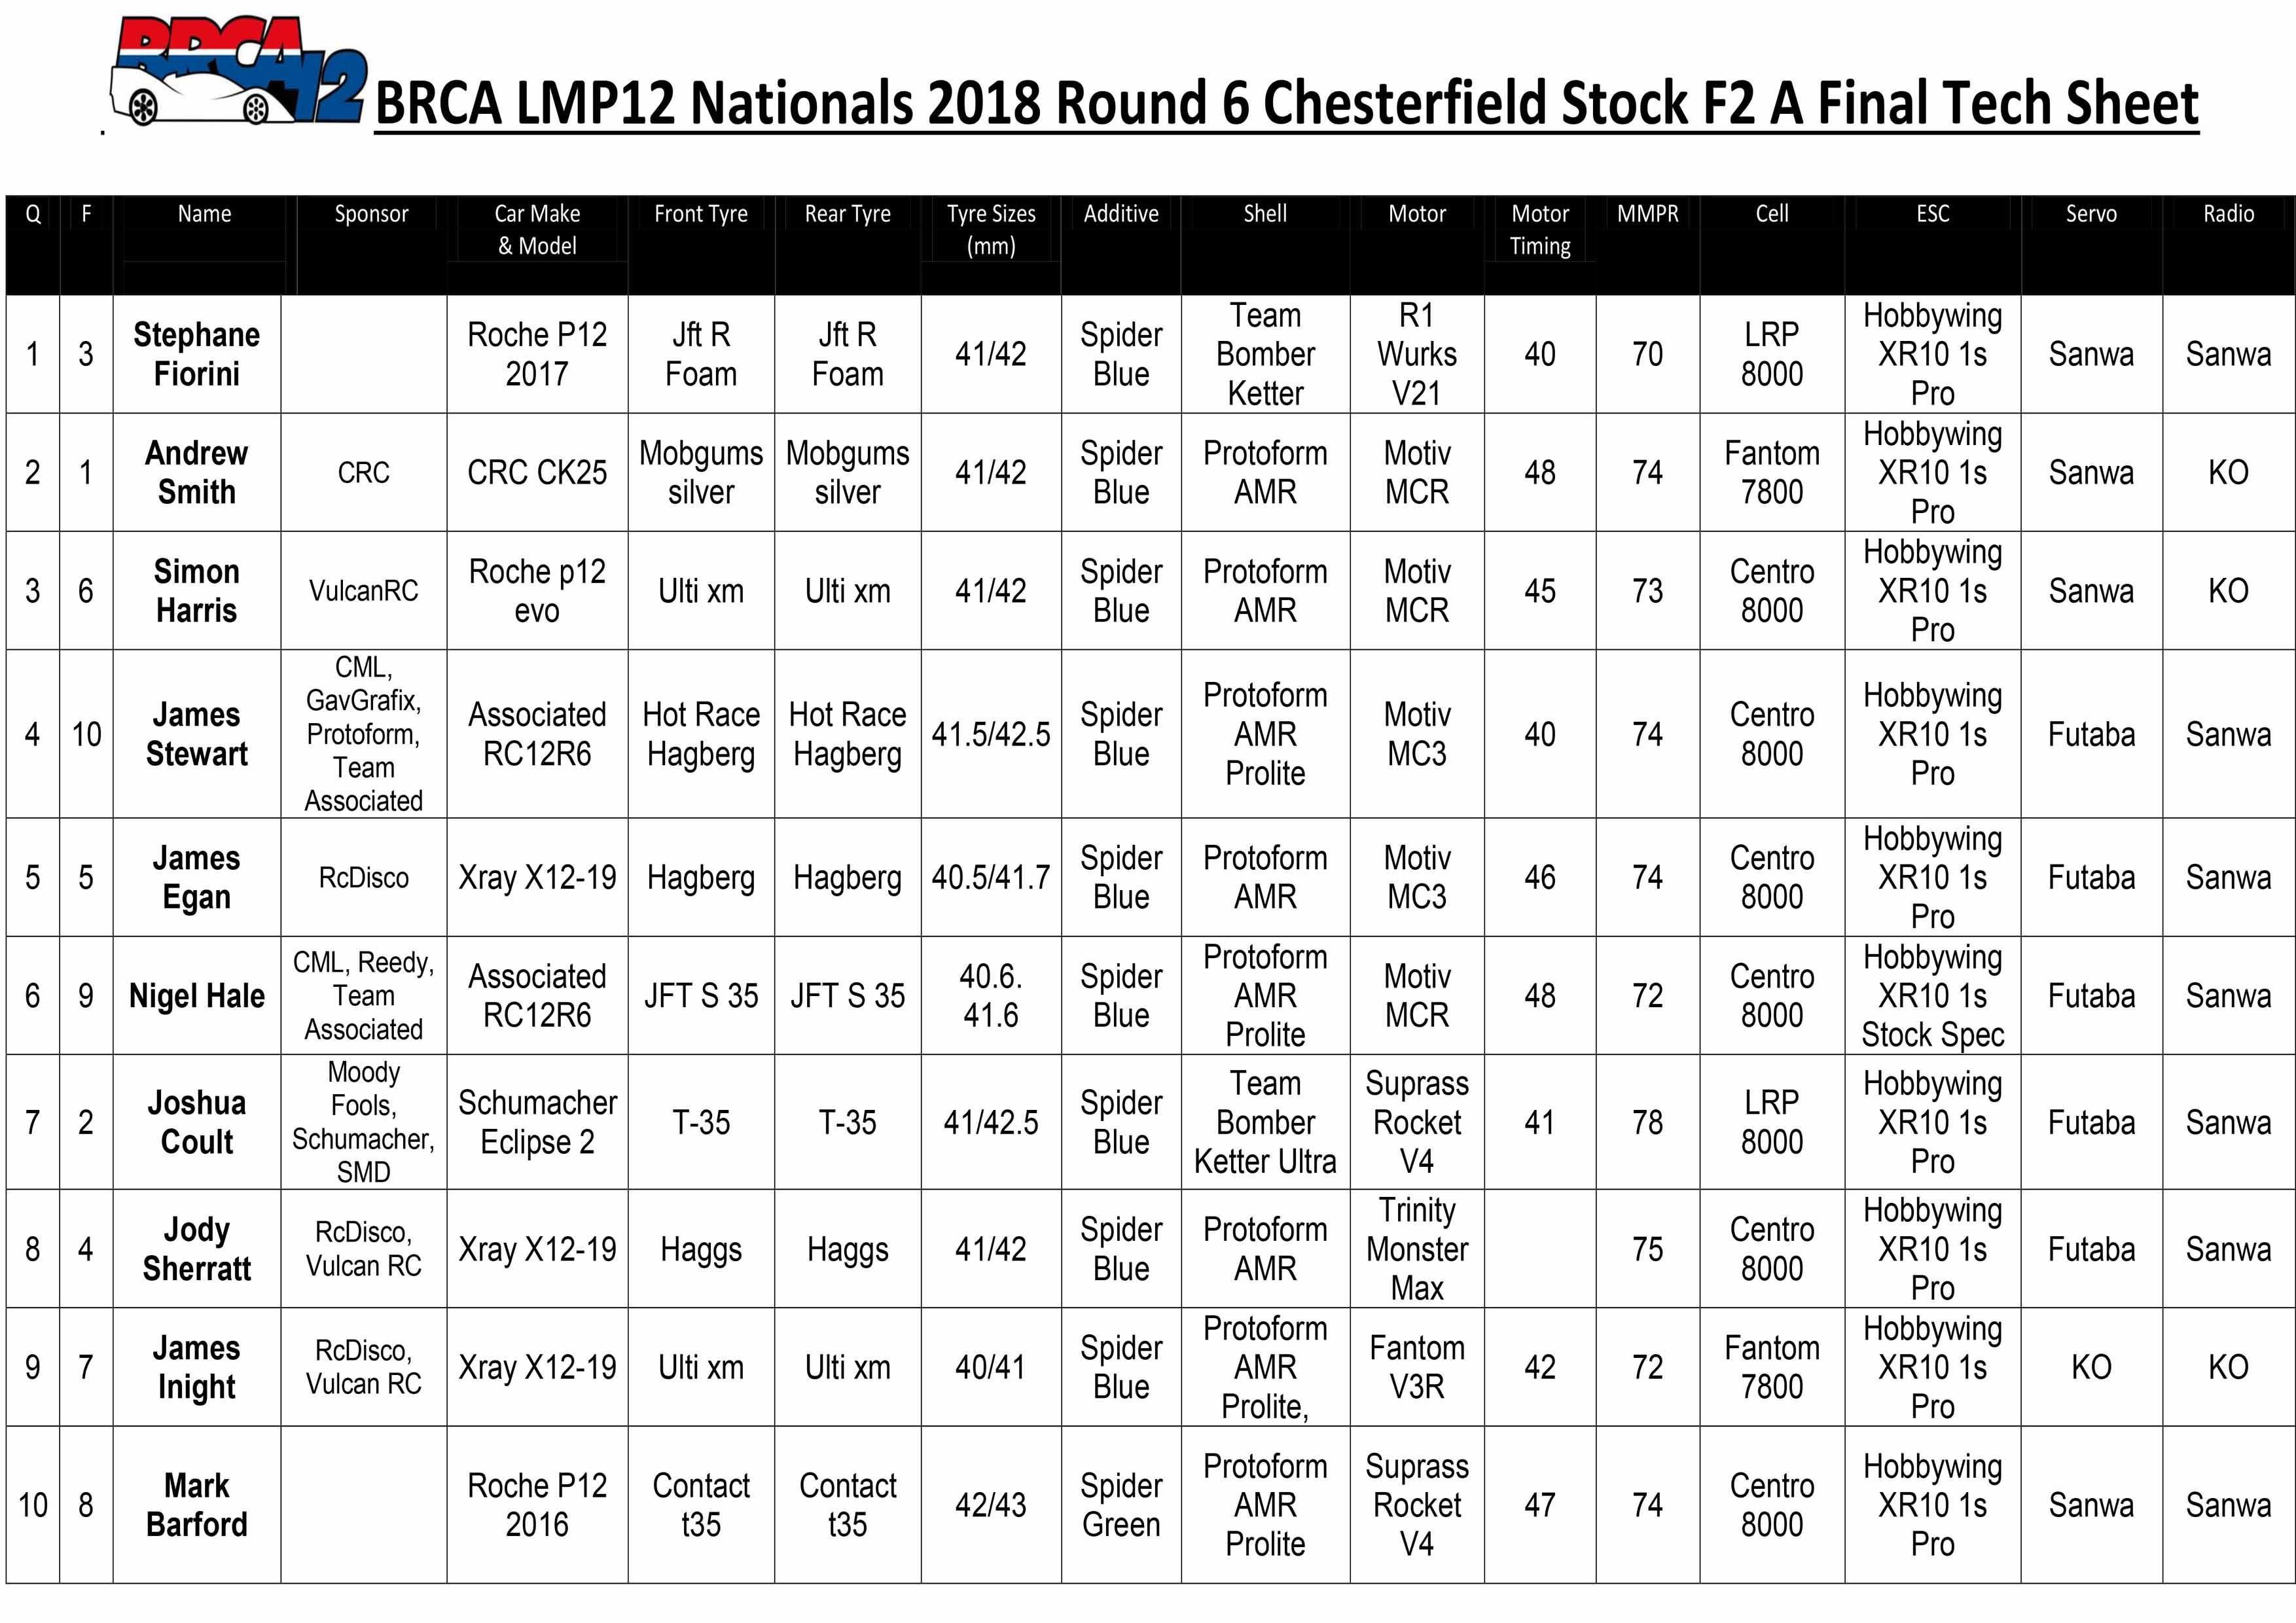 Chesterfield Stock F2 Tech Sheet